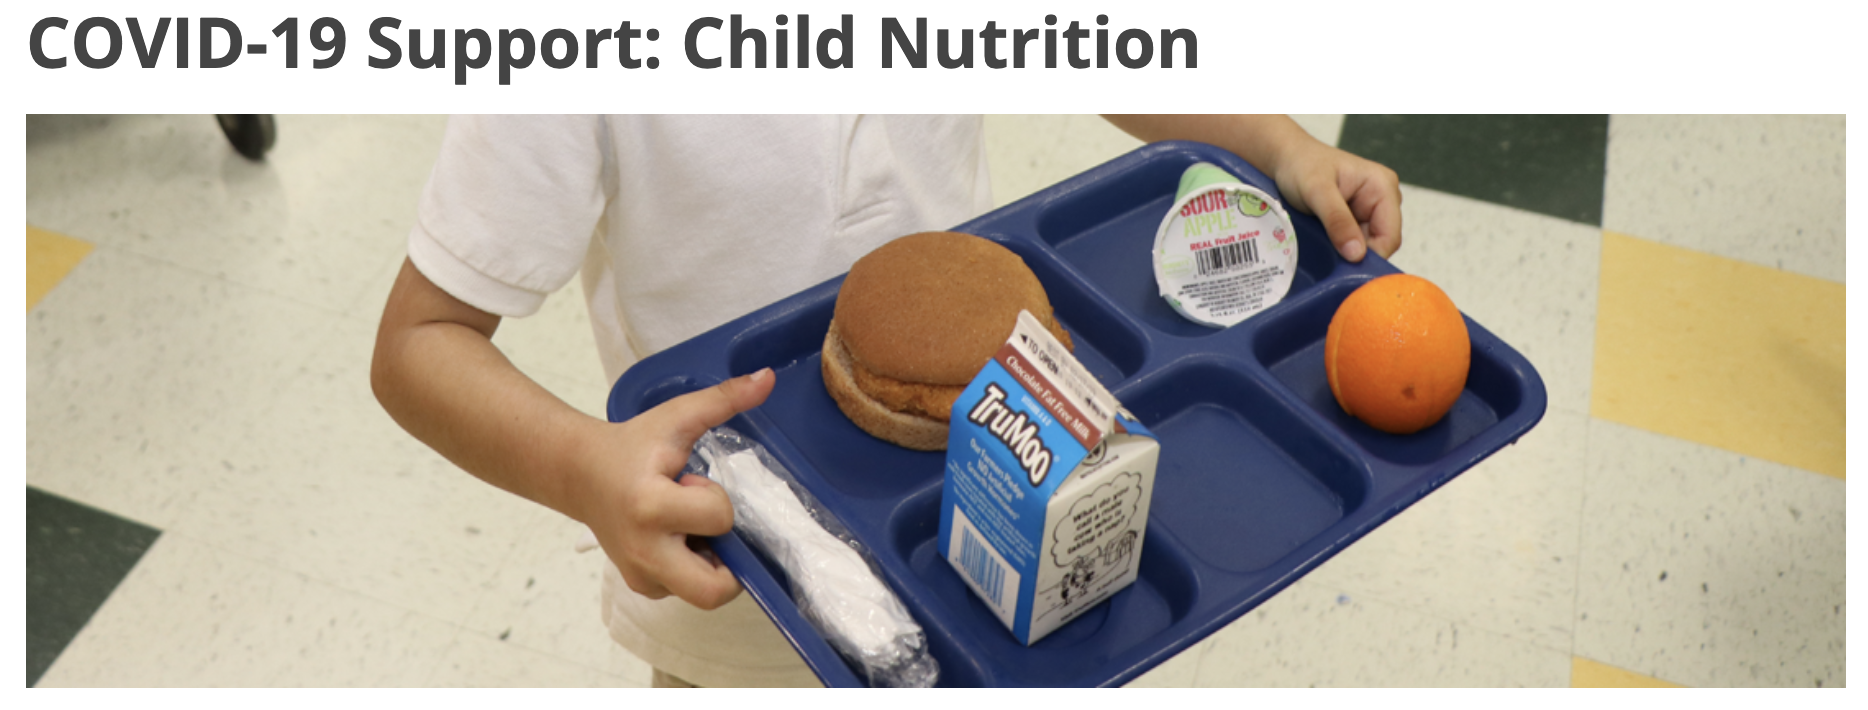 COVID-19 Support: Child Nutrition